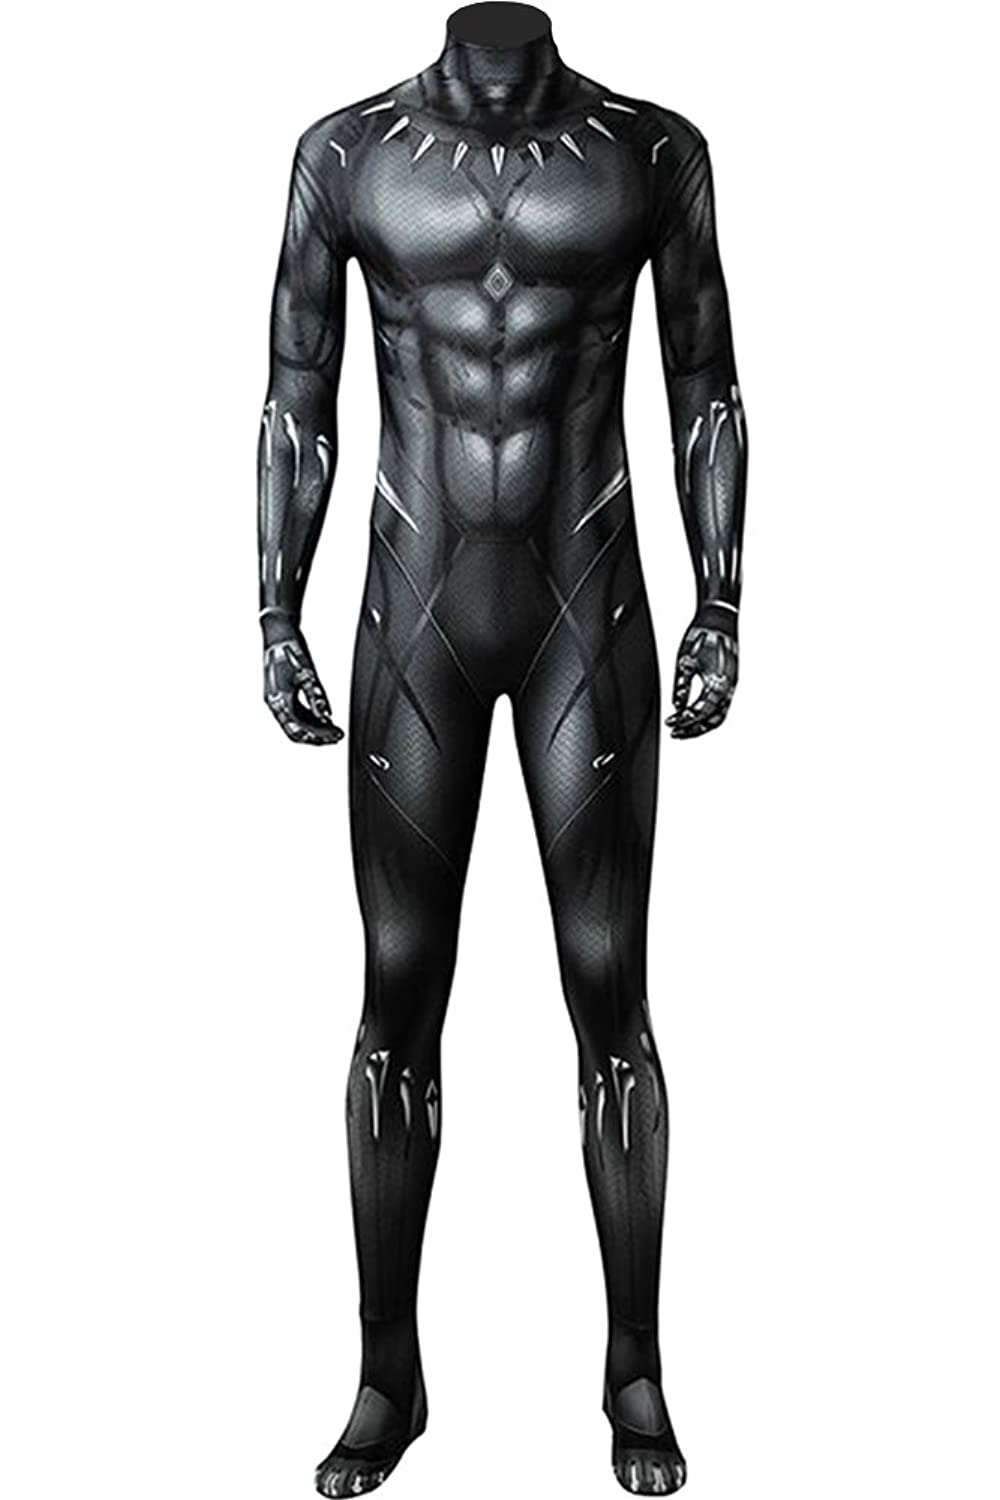 Wecos 2018 Movie Black Panther Costume T'Challa 3D Printed Jumpsuit